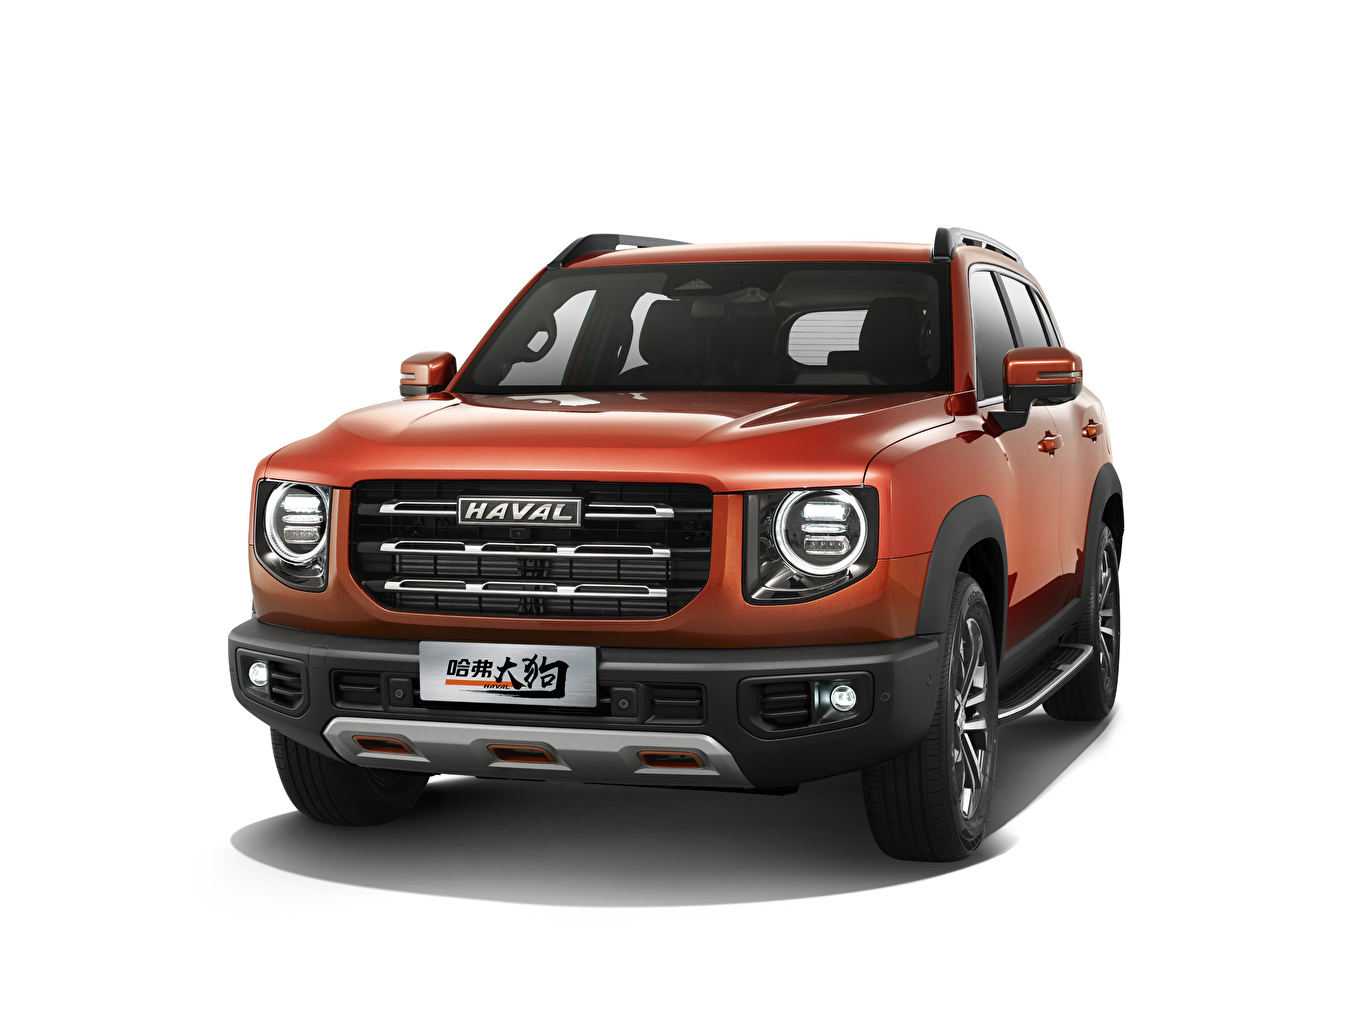 Picture Haval Chinese CUV Dagou, 2020 auto Metallic White background Crossover Cars automobile